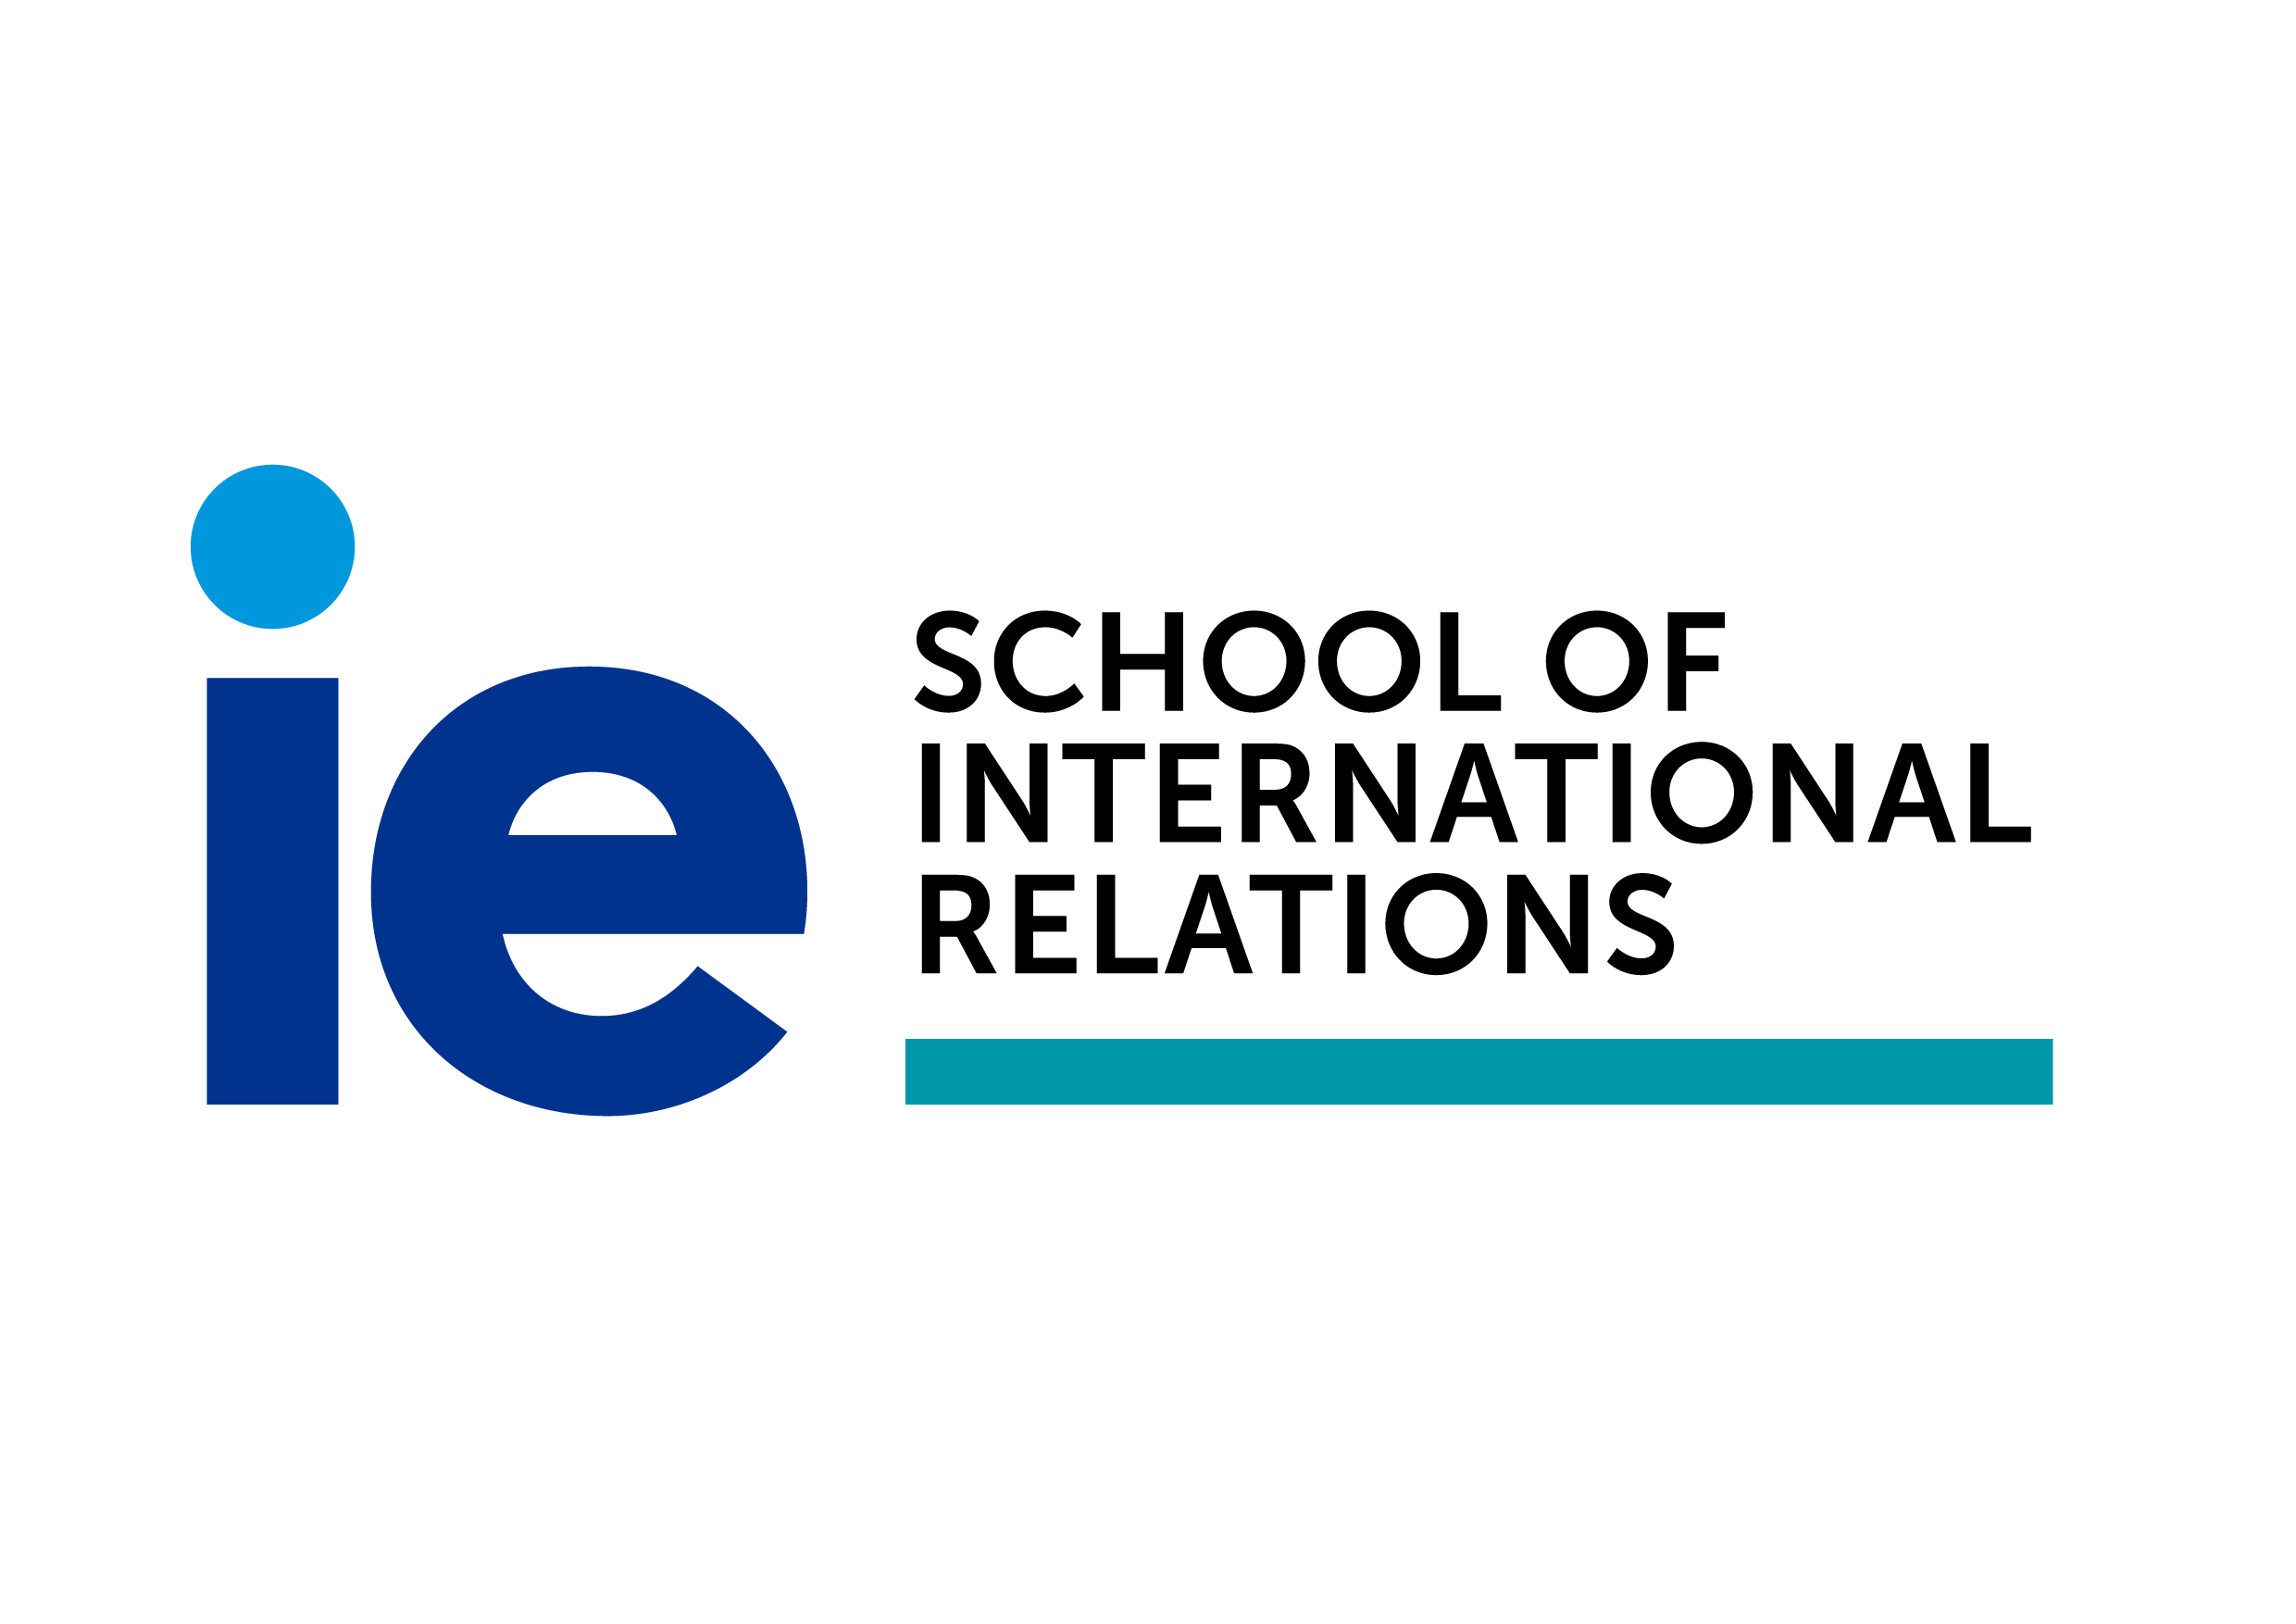 School of international relations